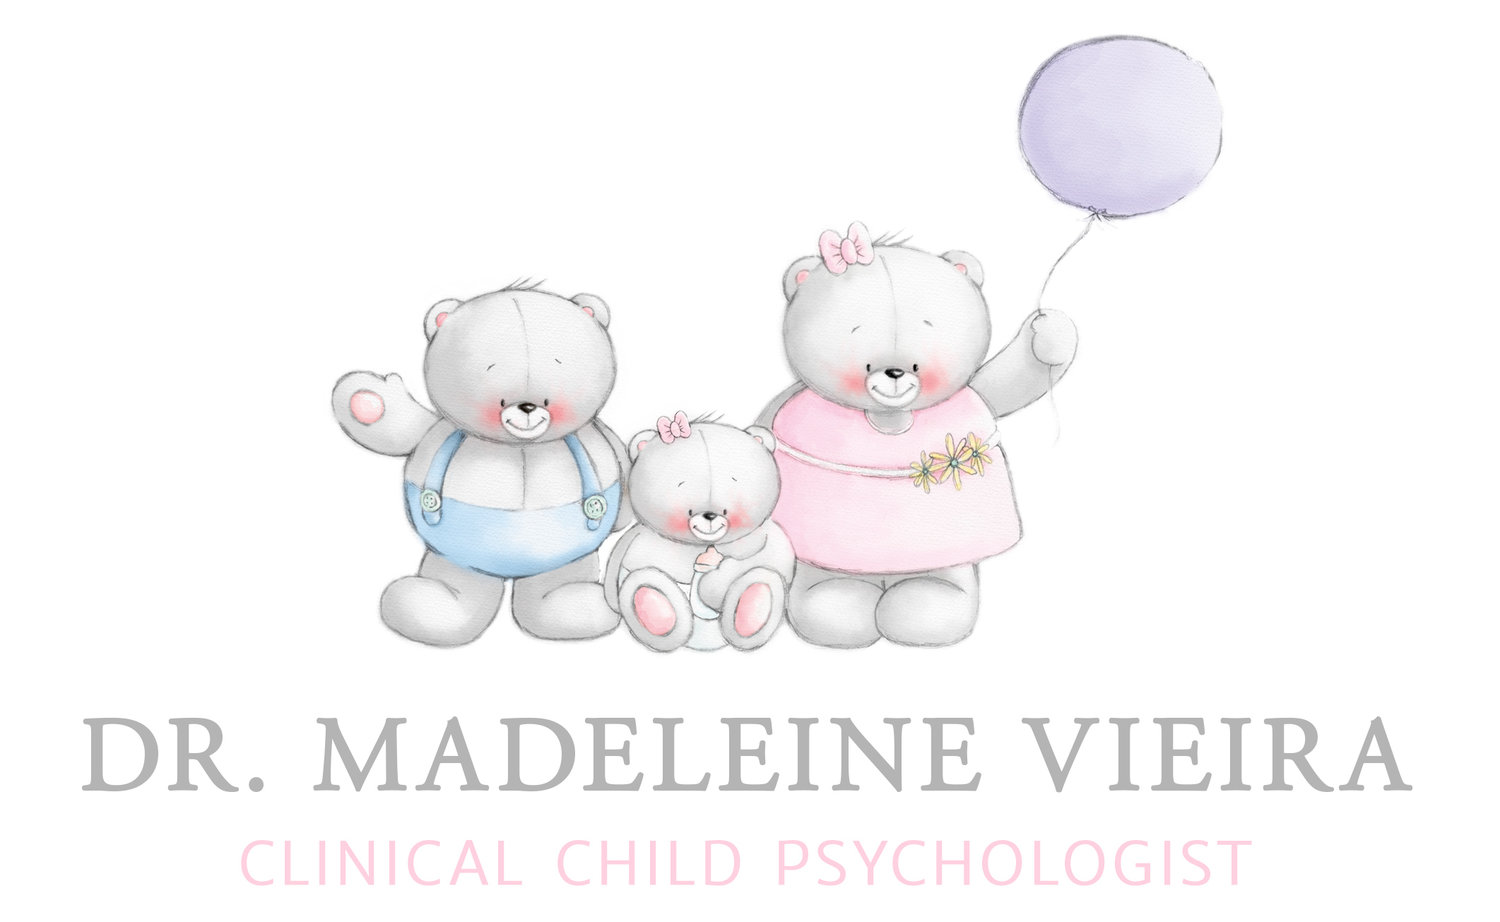 Dr. Madeleine Vieira - Clinical Child Psychologist - South Kensington, London